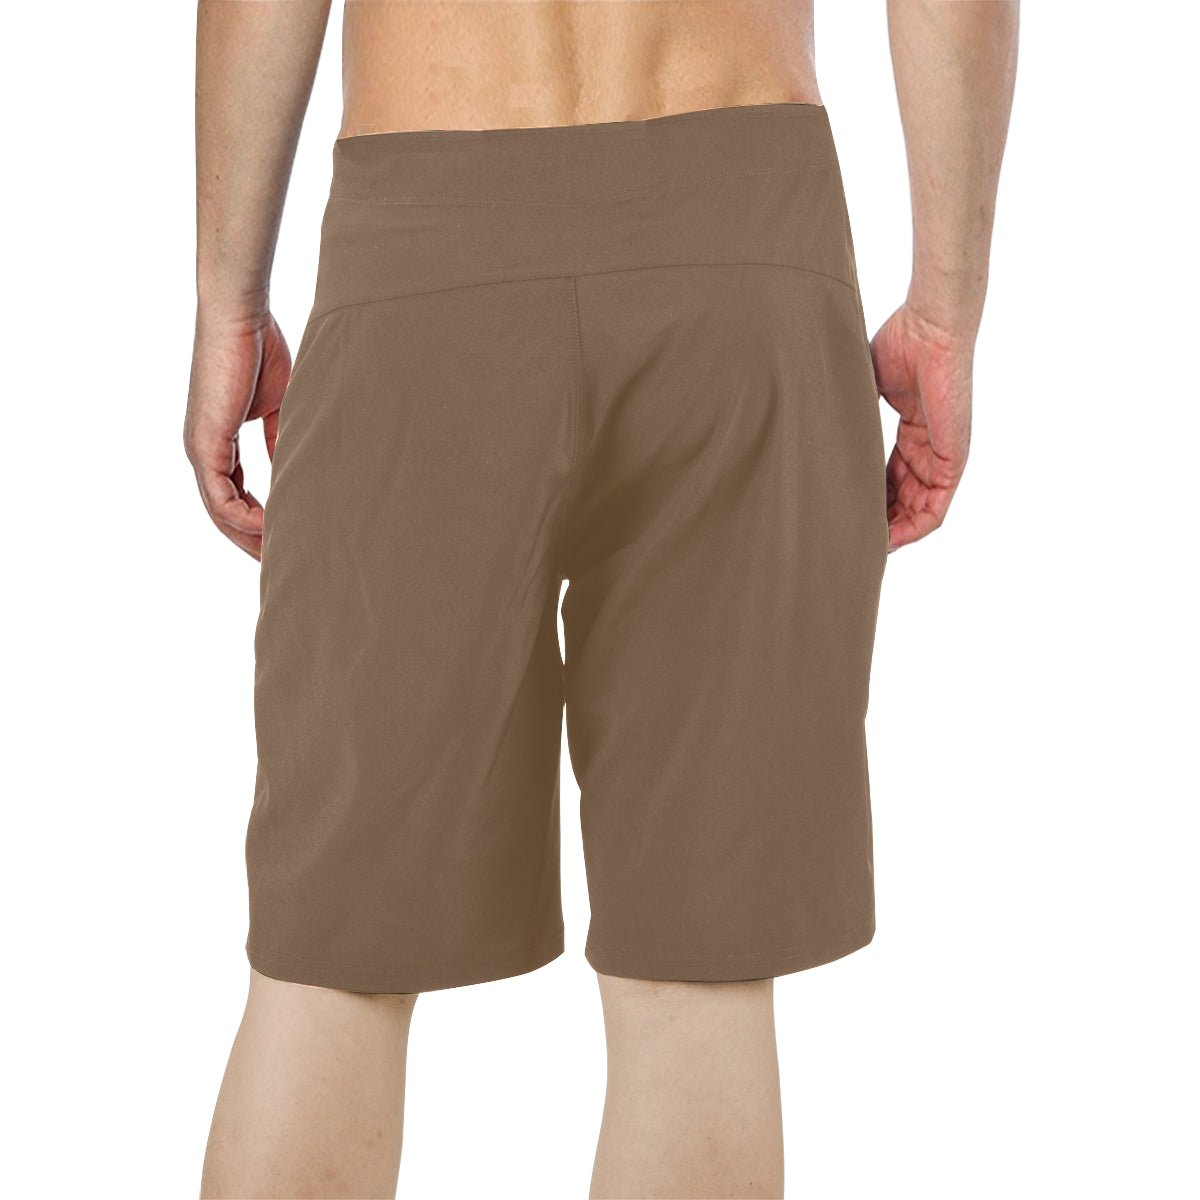 Swim Board Short